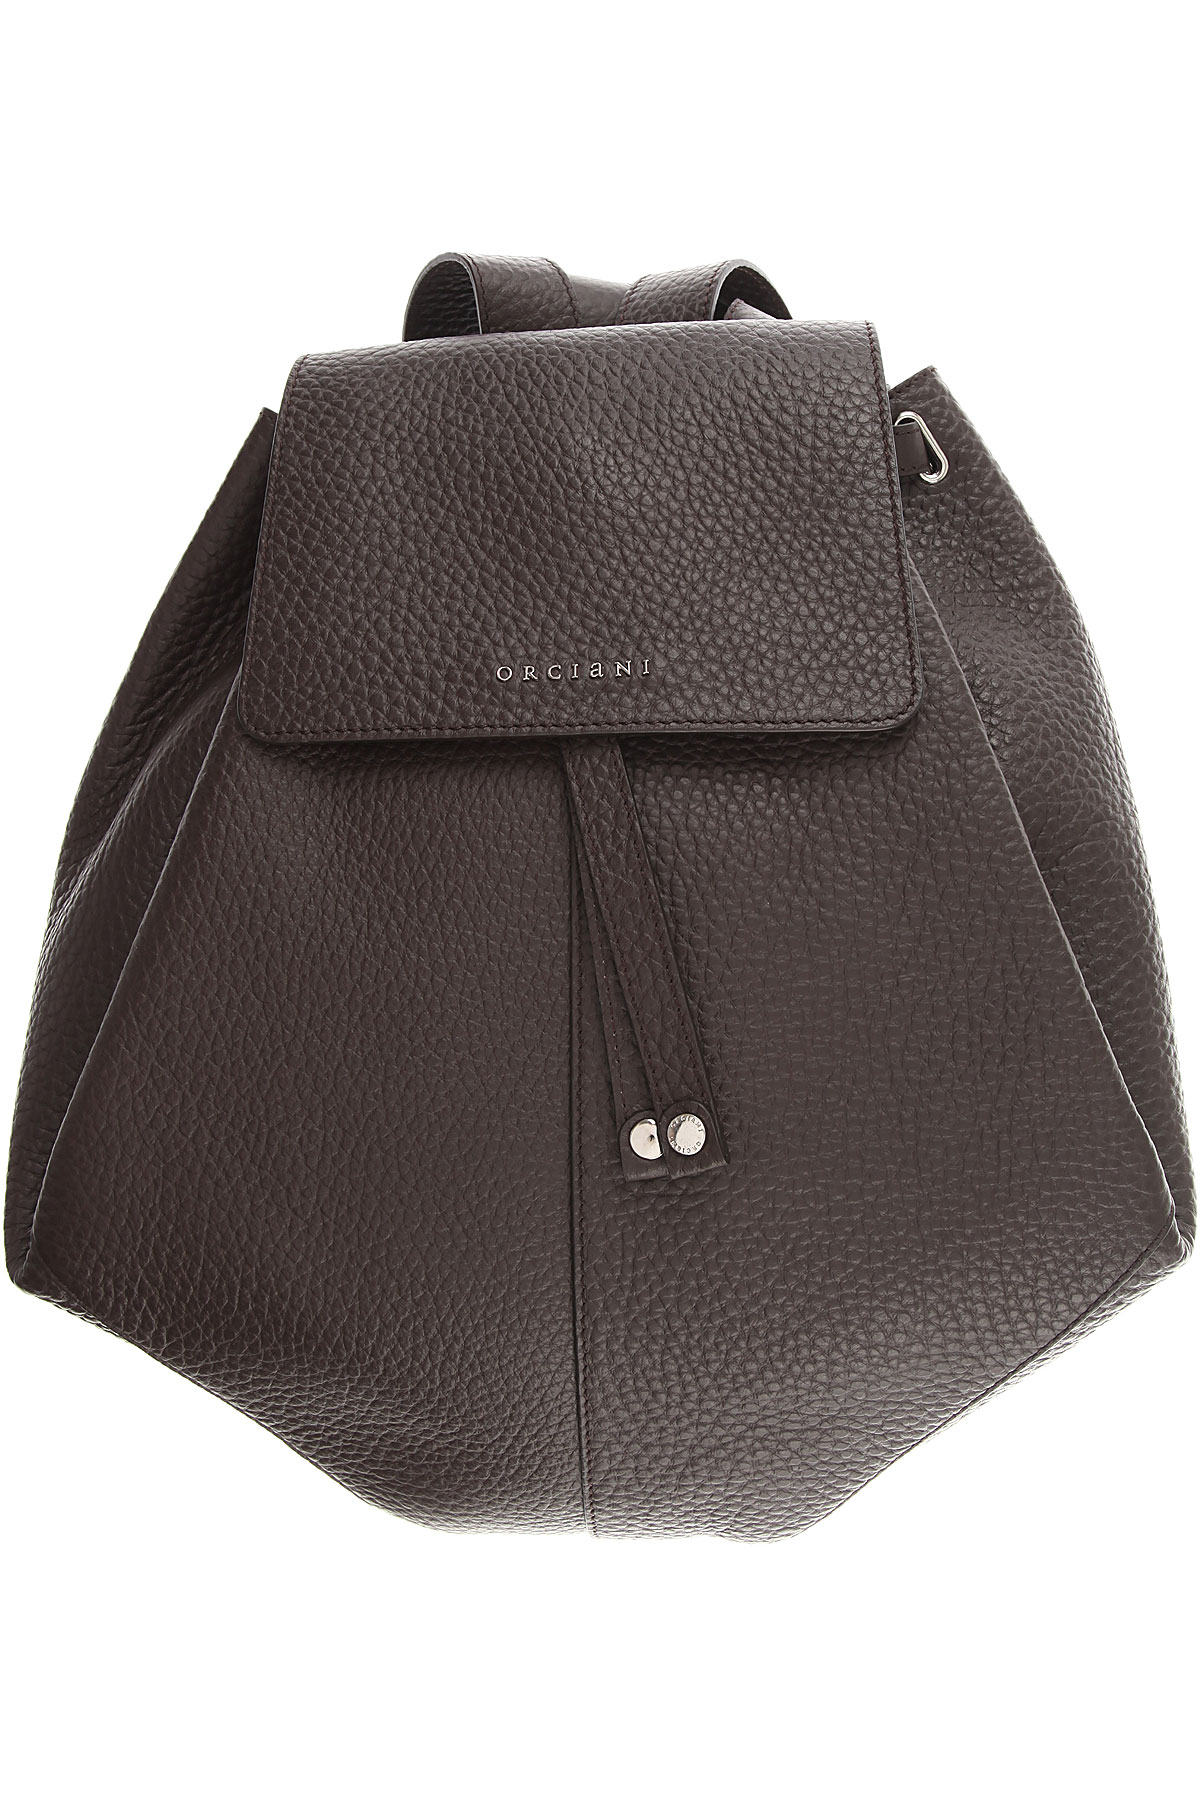 Image of Orciani Backpack for Women, Dark Brown, Leather, 2017